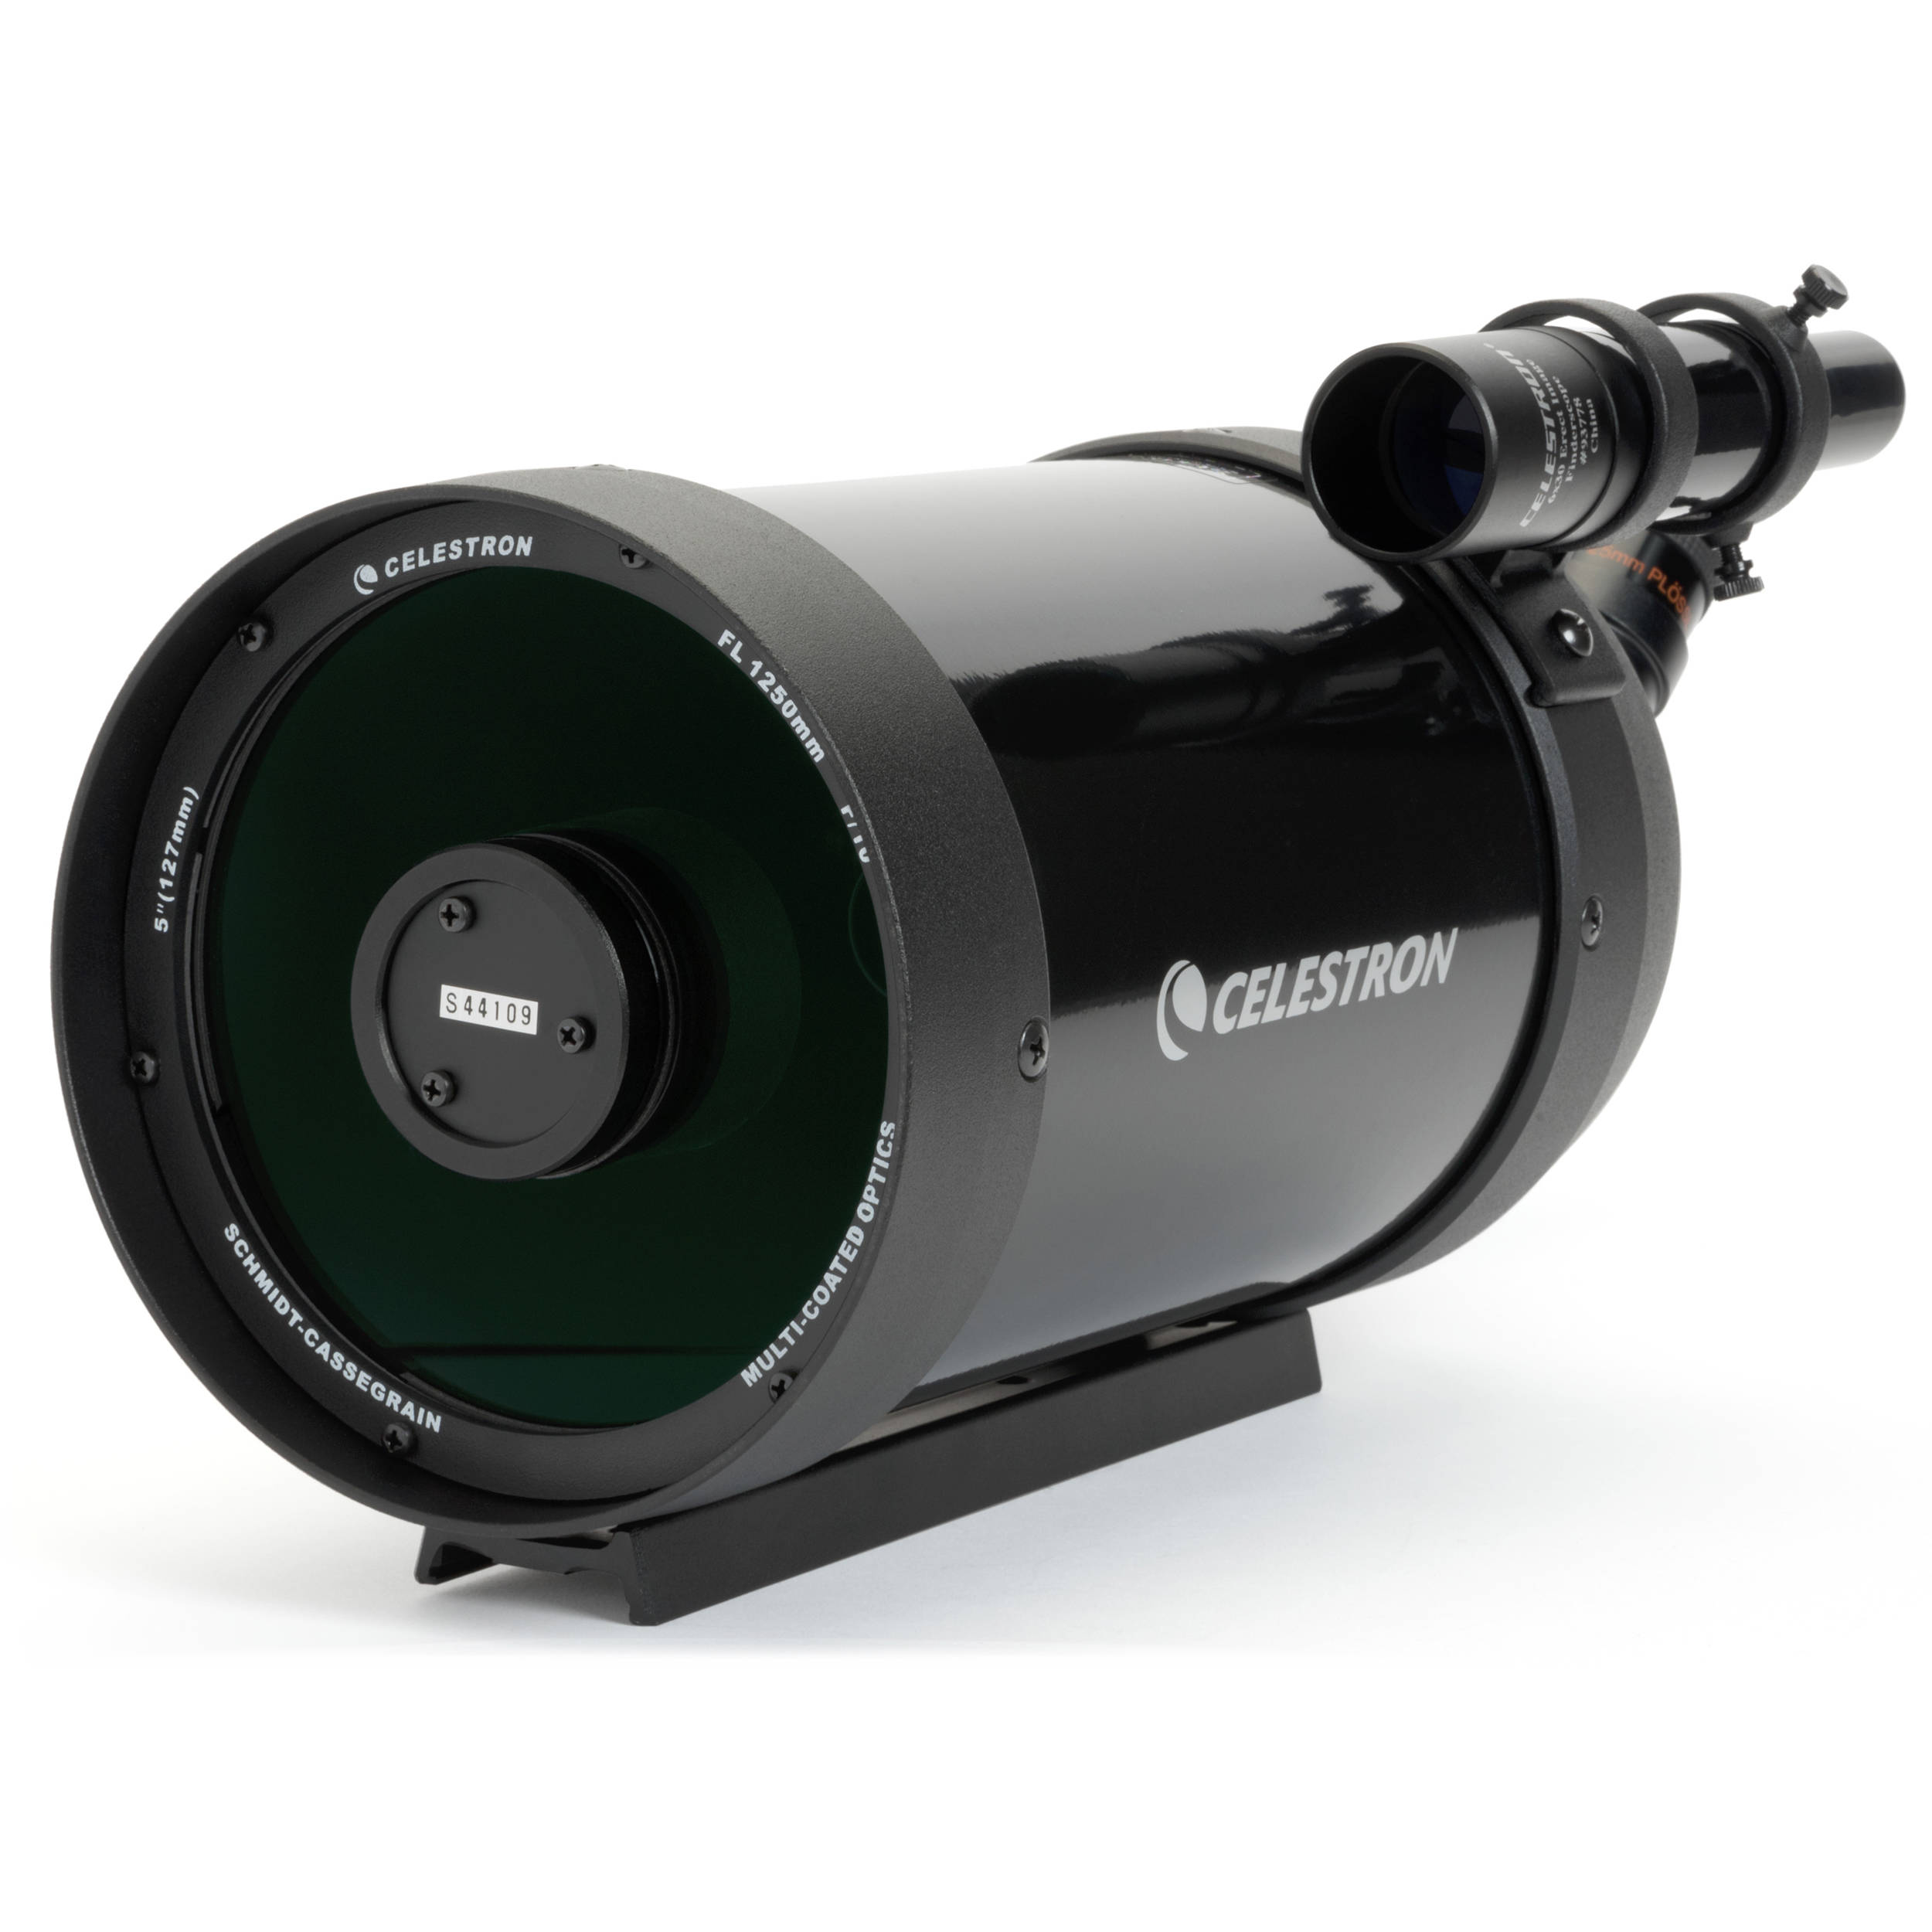 Celestron C5 127mm f/10 50x Spotting Scope (OTA Only) 52291 B&H on